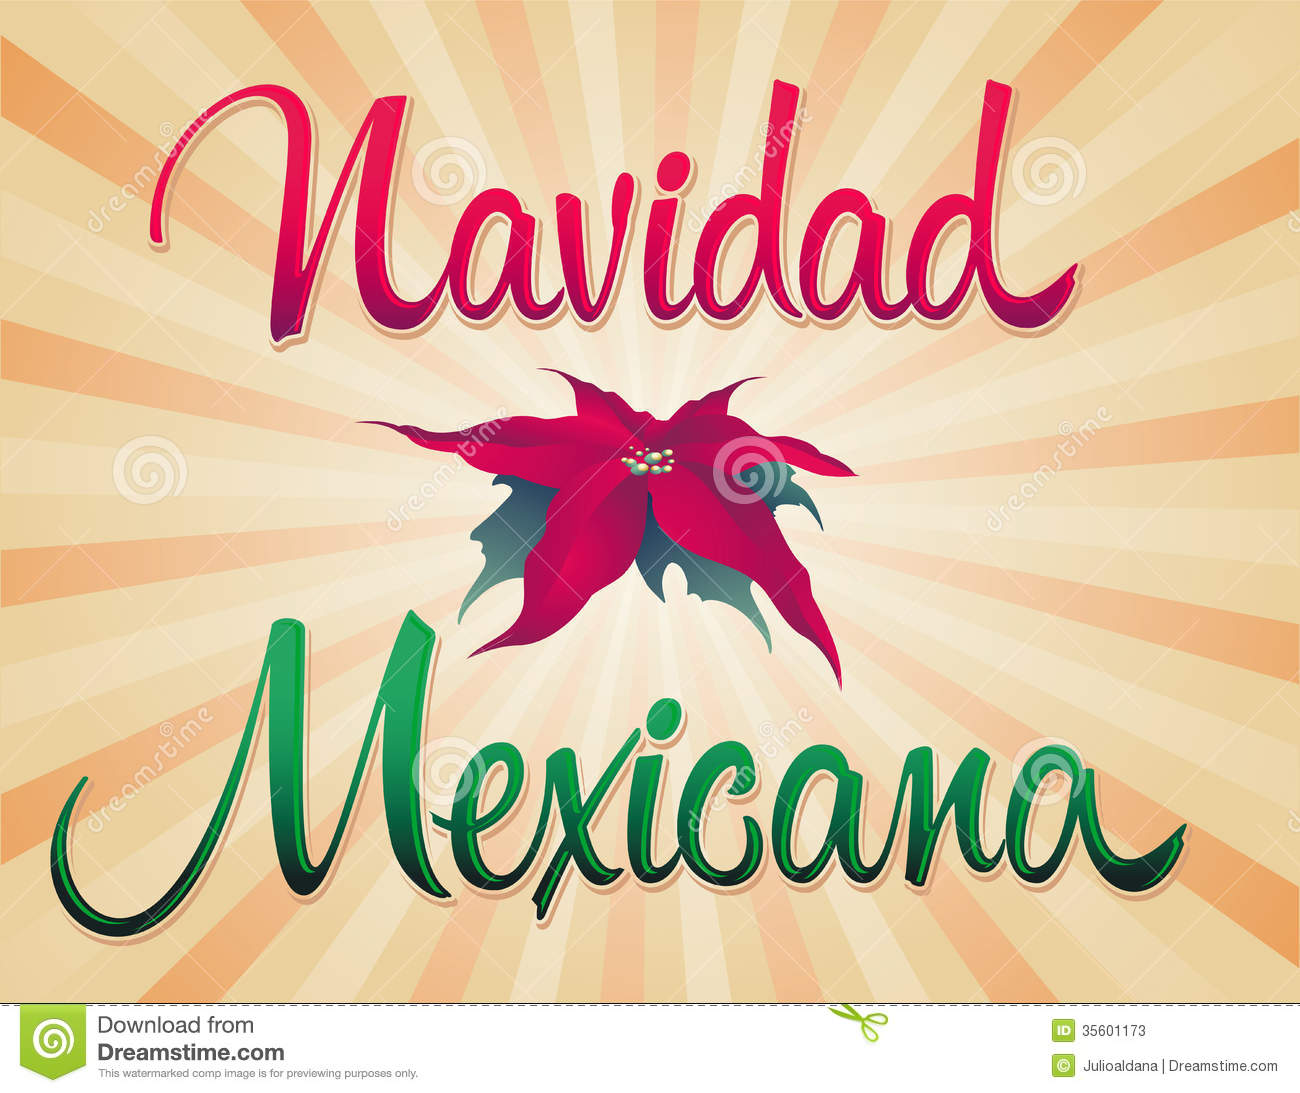 spanish christmas words that start with s